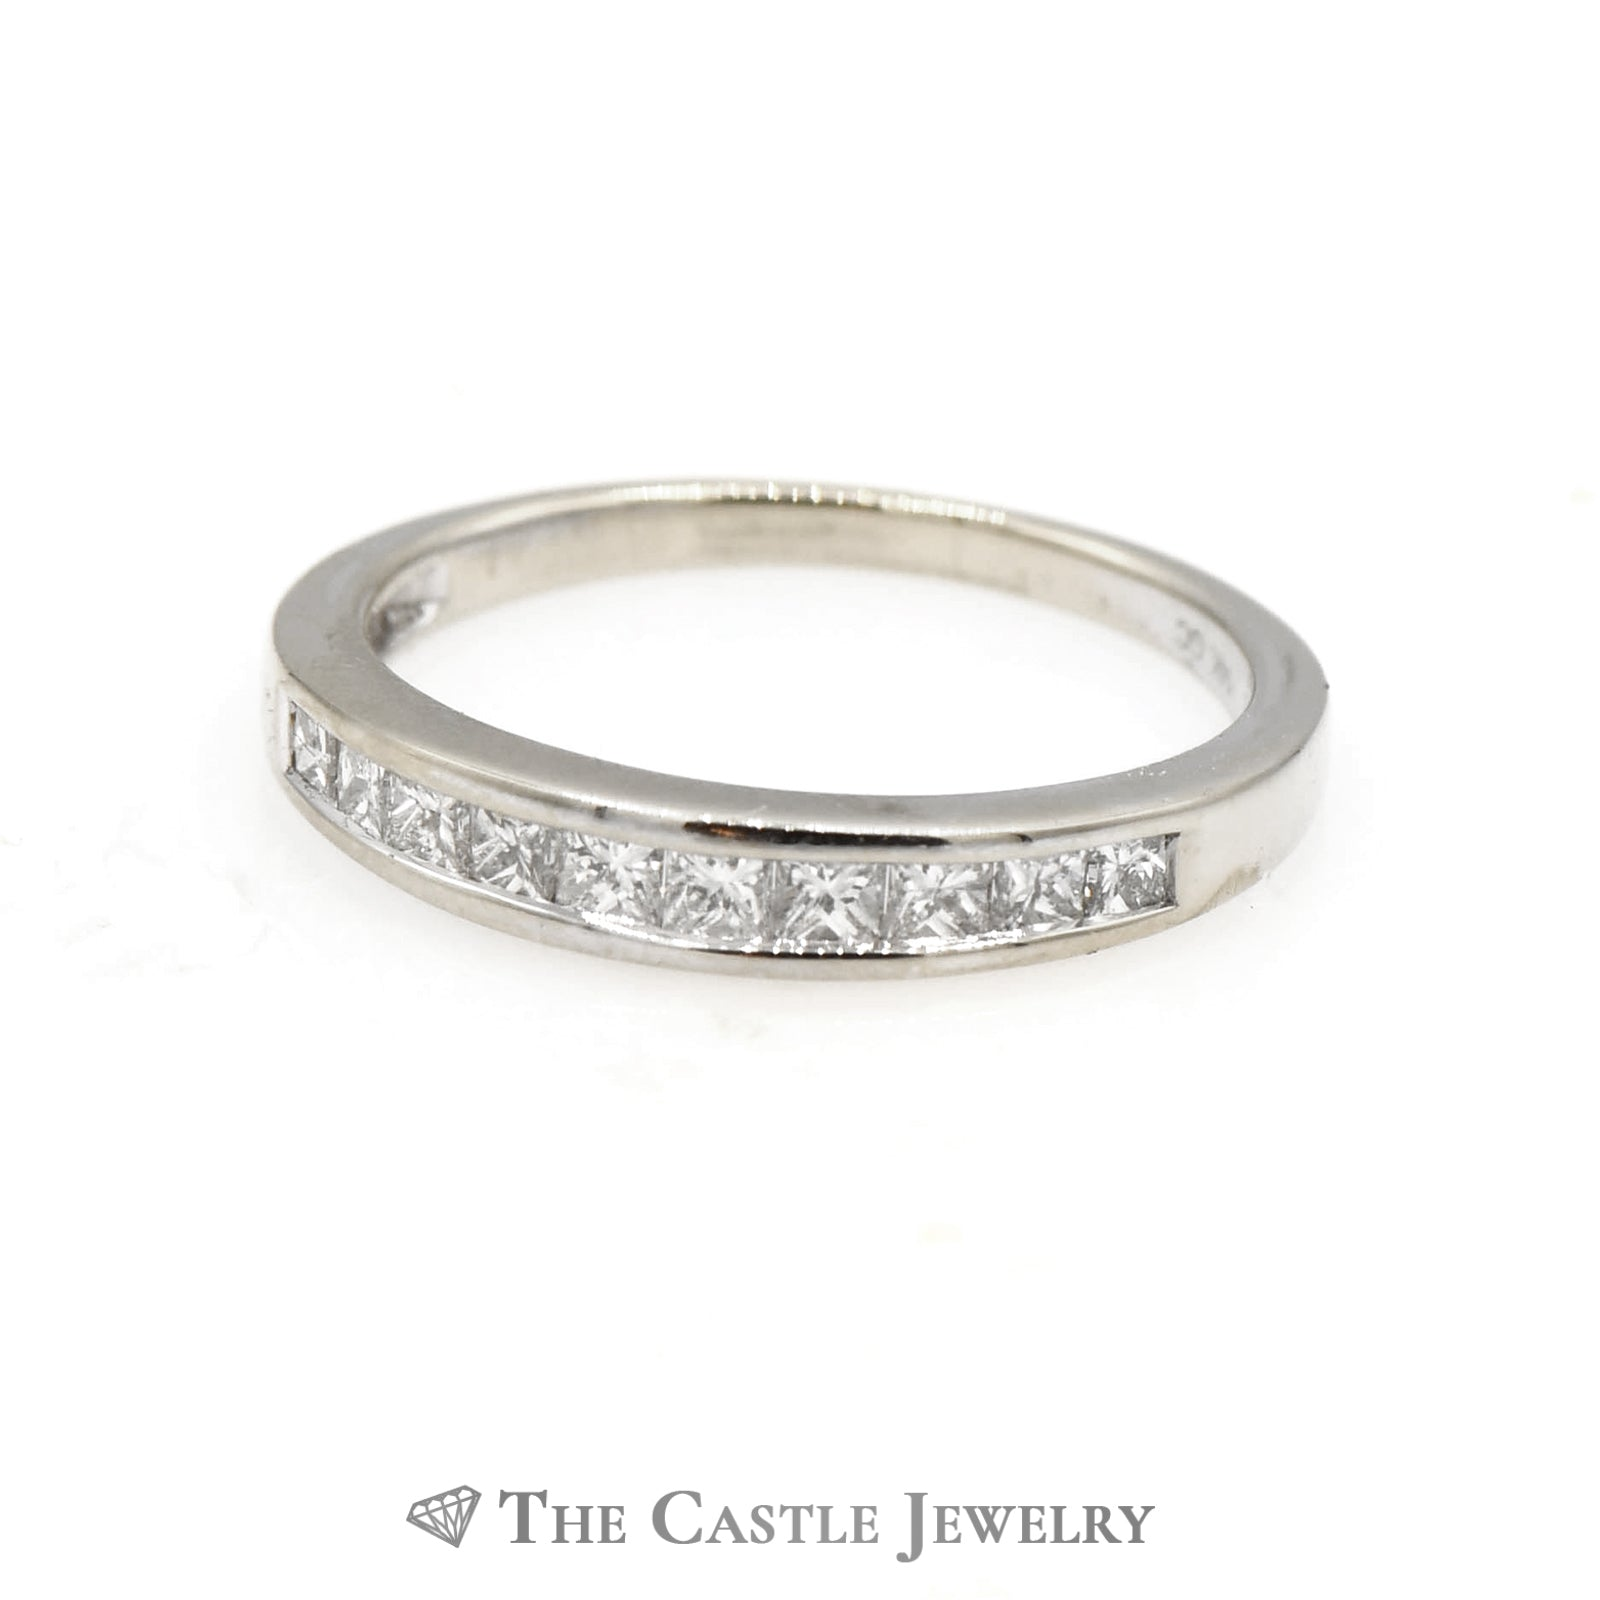 1/2cttw Princess Cut Diamond Wedding Band in 14k White Gold